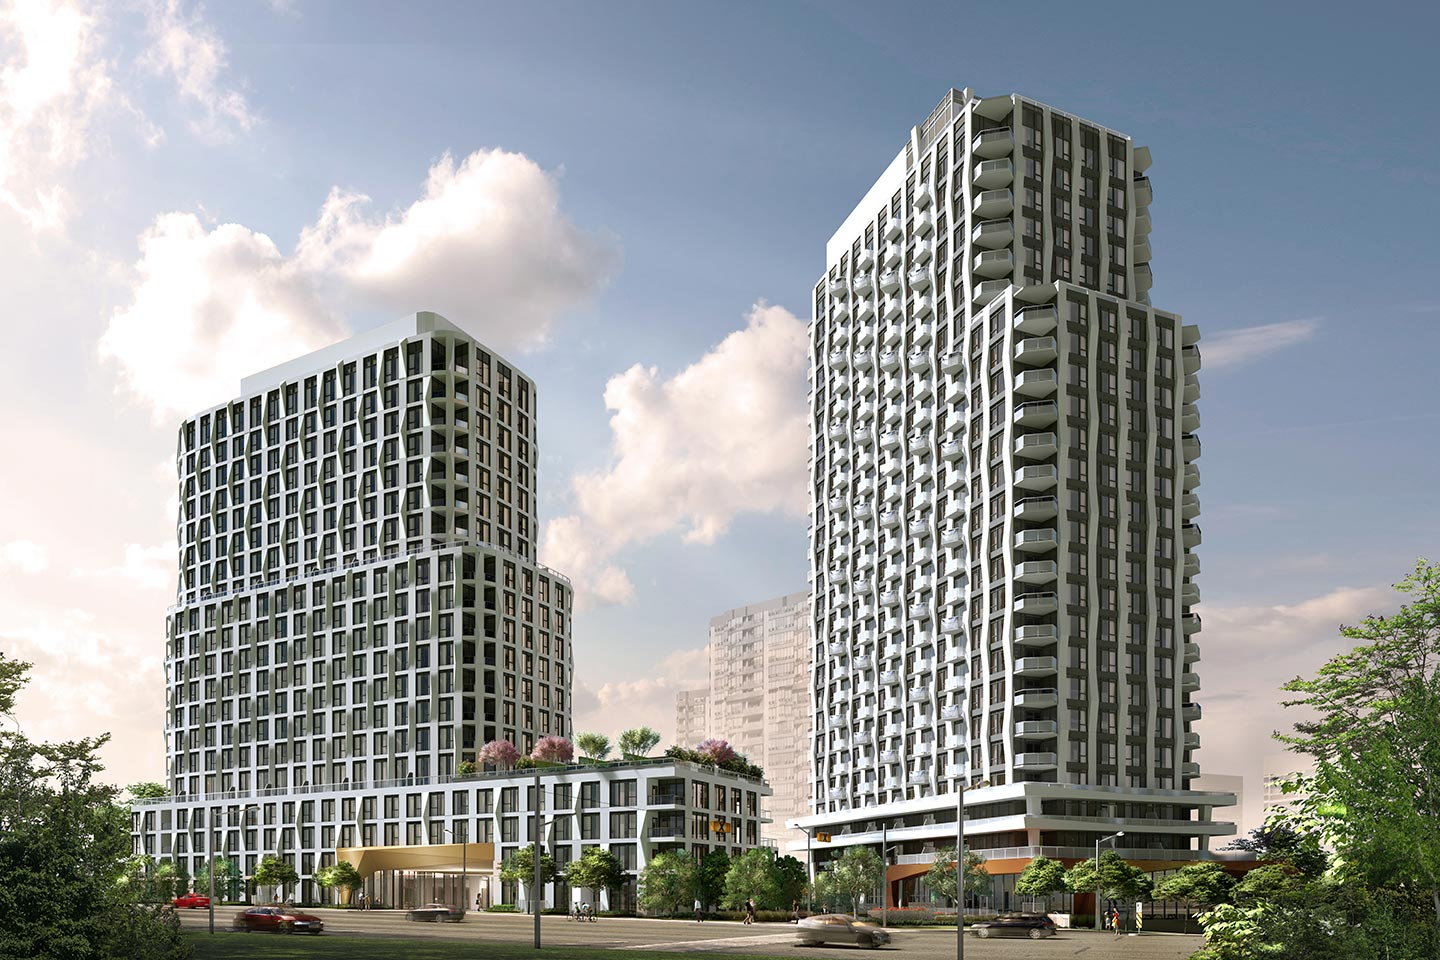 Exterior rendering of Westerly Condos in Etobicoke.